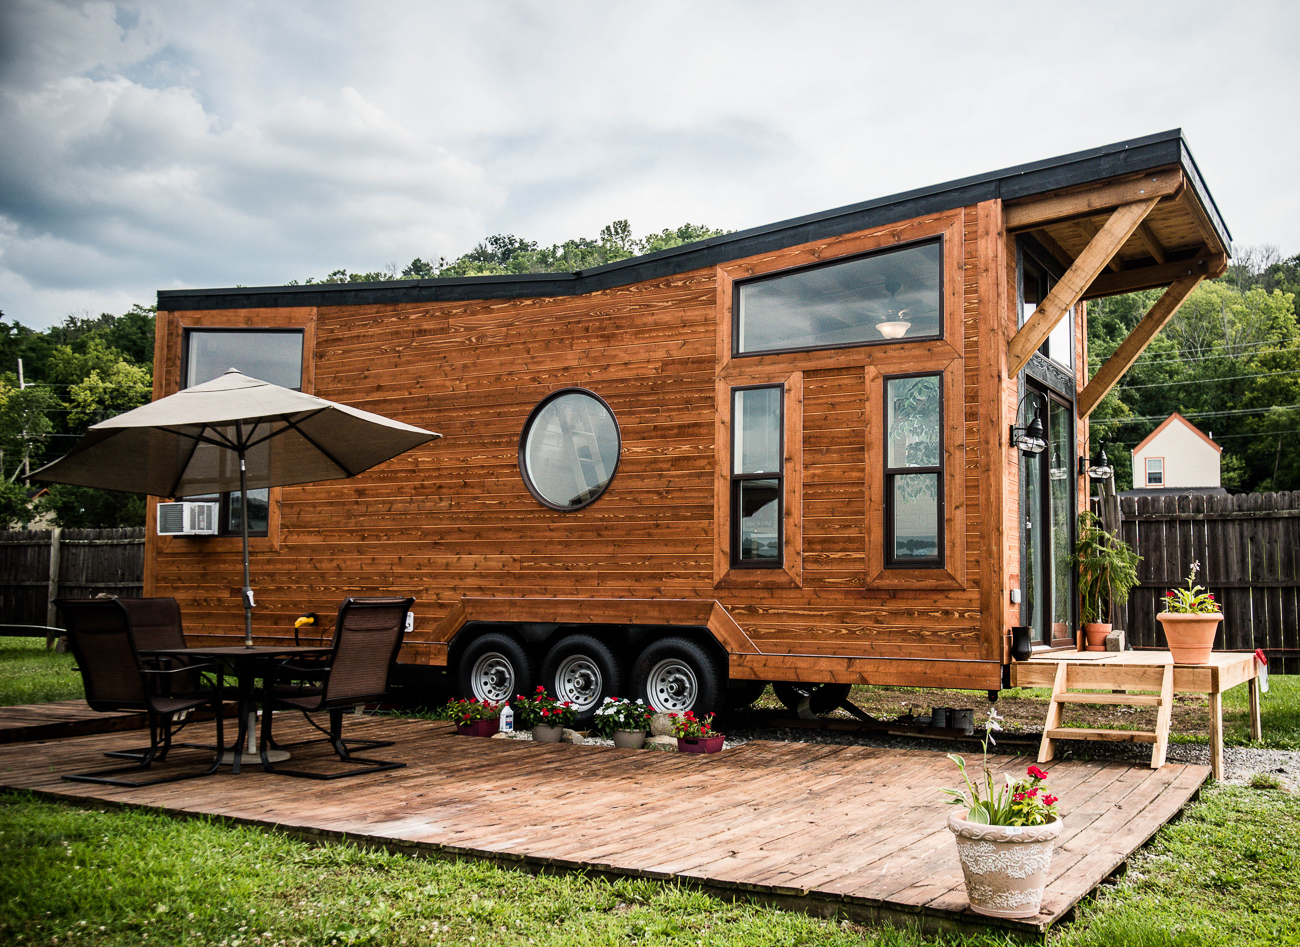 "You can stay at this adorable tiny home stationed at the Riverside Marina in Dayton, KY for $89/night. Originally built in Milford by WheelLife Homes, the 27-foot-long, 240-square-foot tiny home currently serves as a modestly priced Airbnb at the river's edge. Described as the ""Taj Mahal of tiny houses,"" the Airbnb features an attractive industrial aesthetic alongside a list of amenities (such as HVAC and sewer) to make it a comfortable place to stay for the weekend. / Image courtesy of Natalie Gregory // Published: 9.3.19"